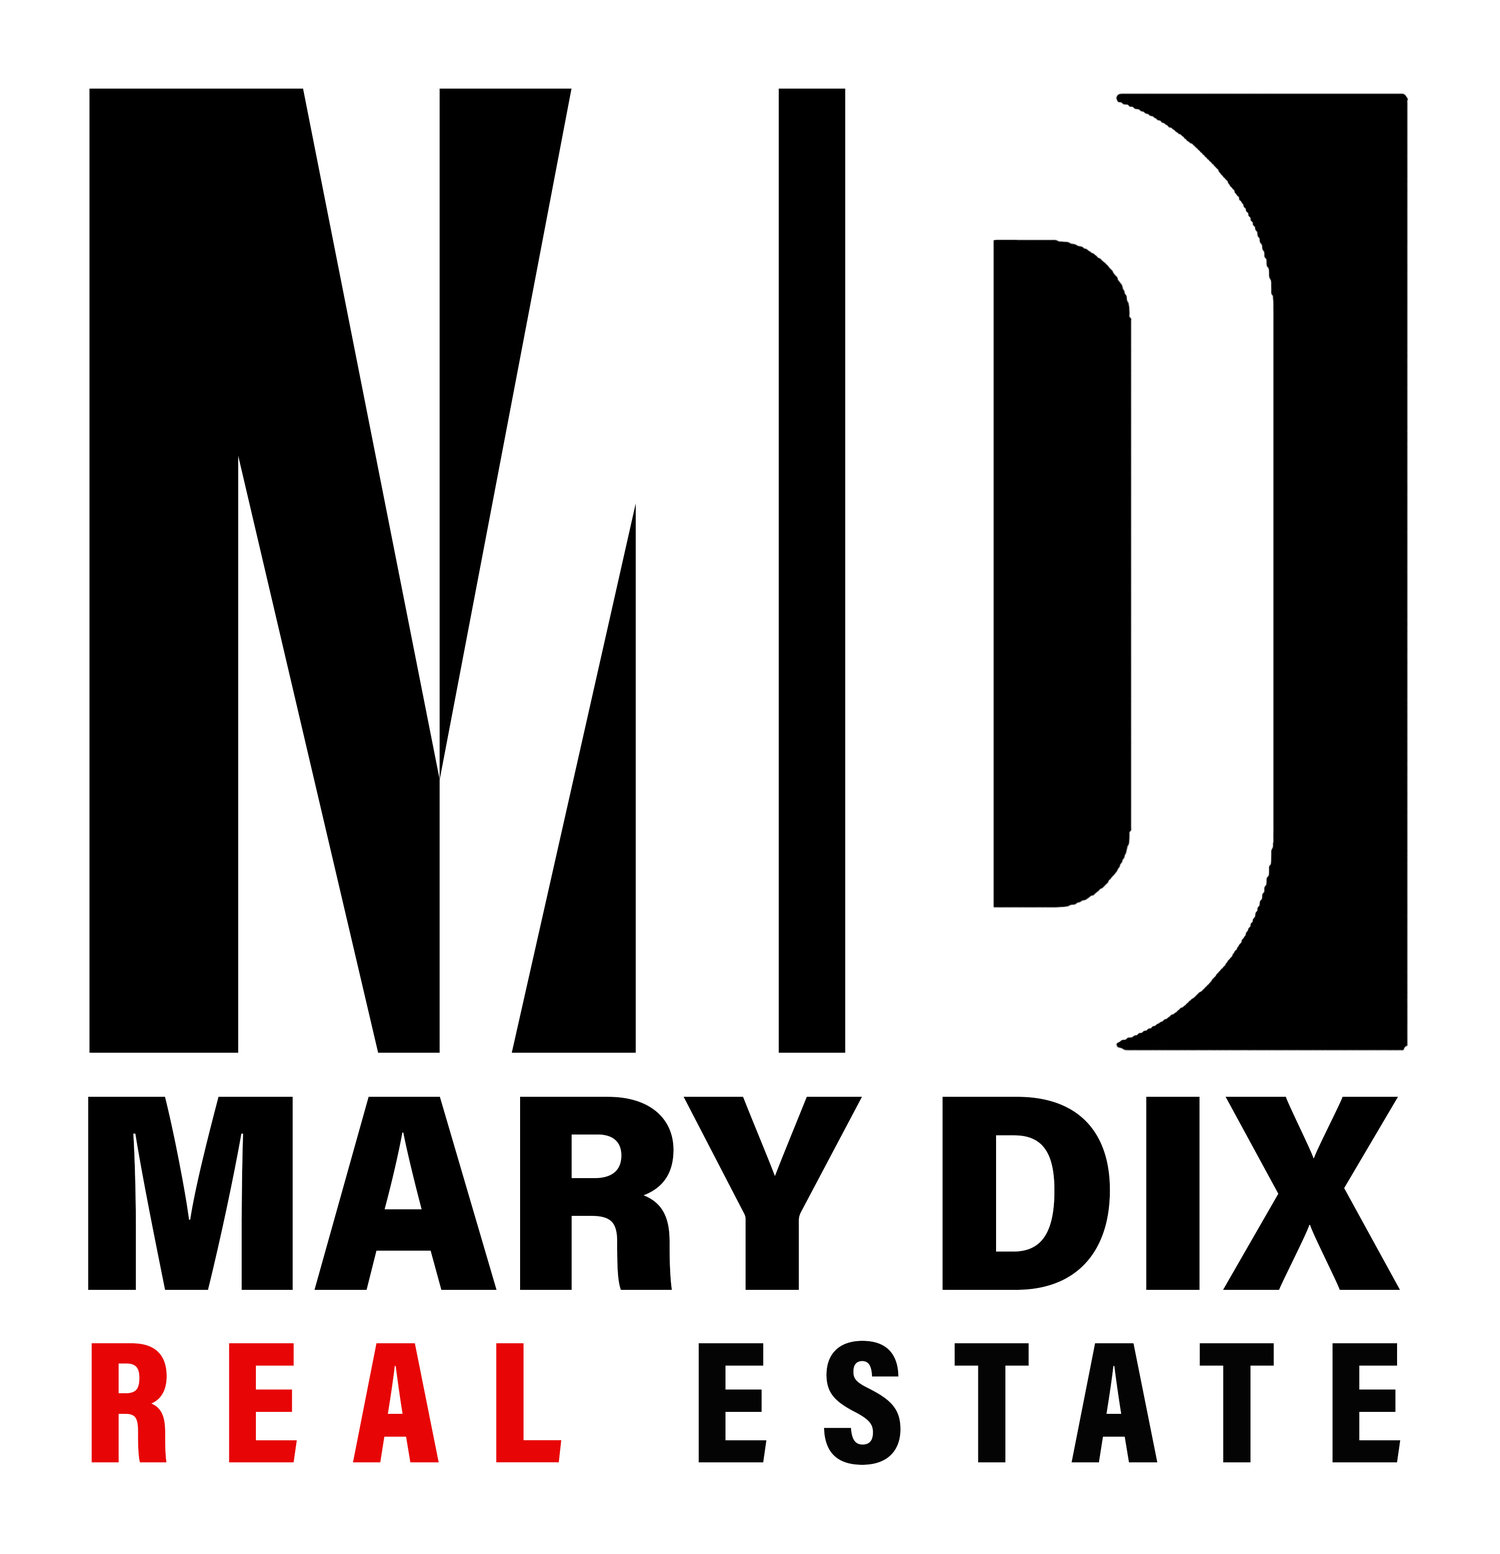 Mary Dix Real Estate